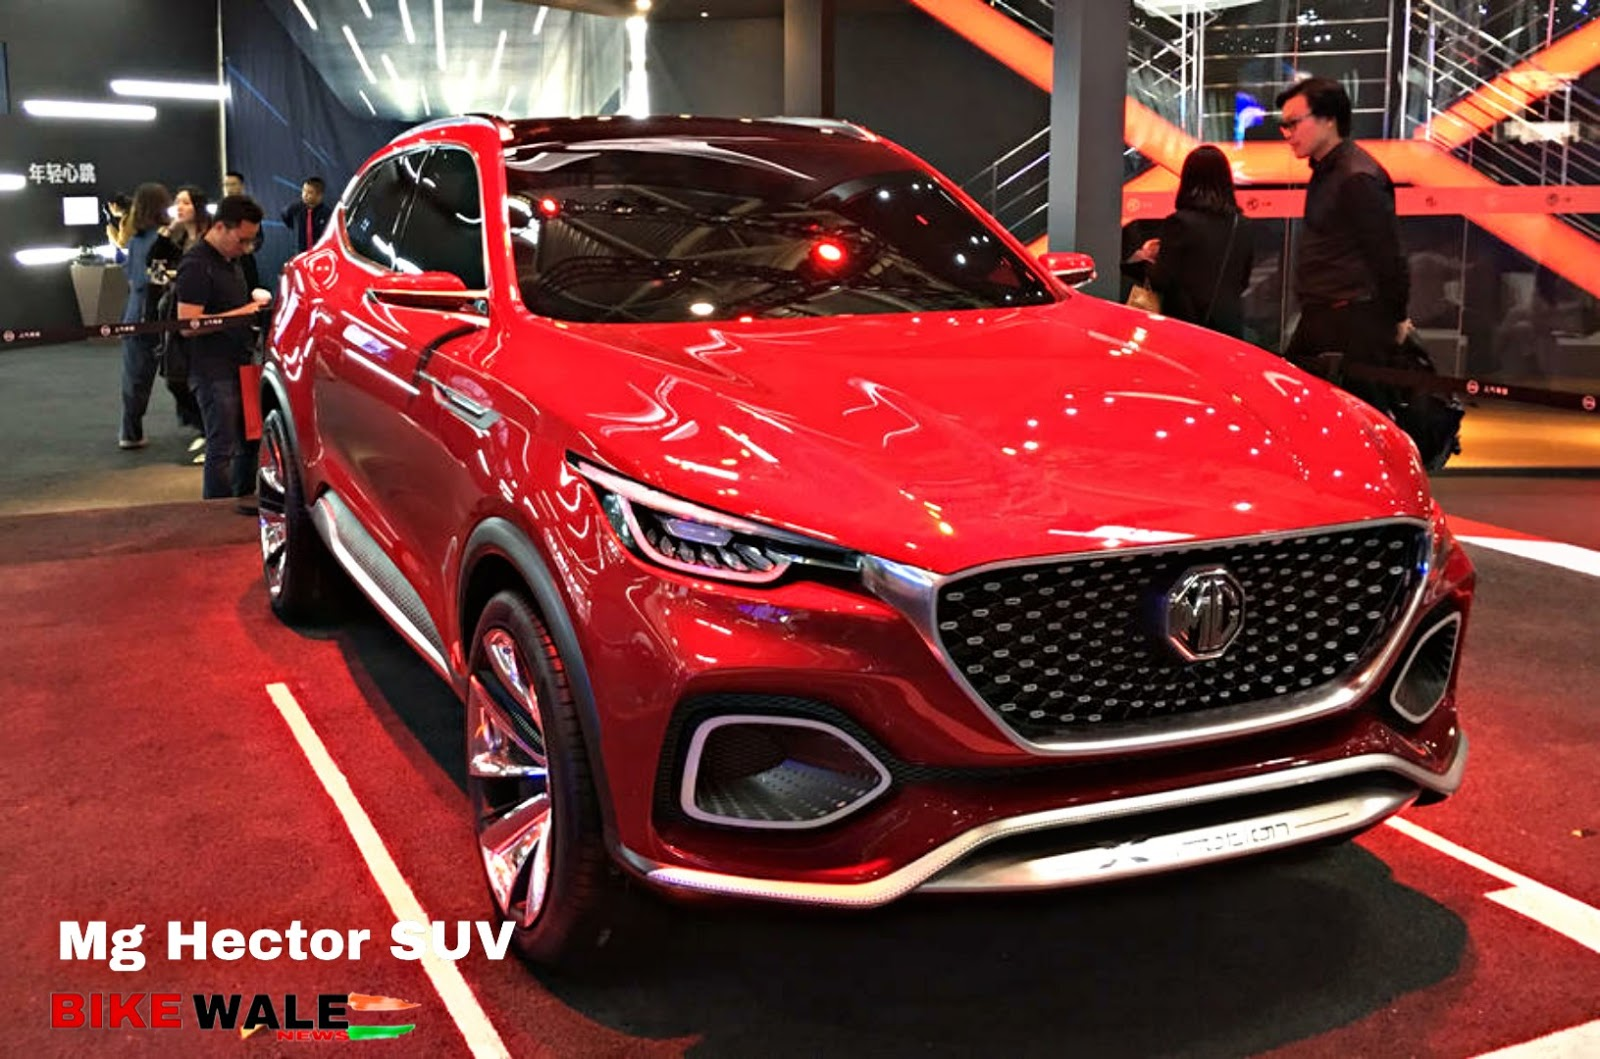 Mg hector car price in india 2019